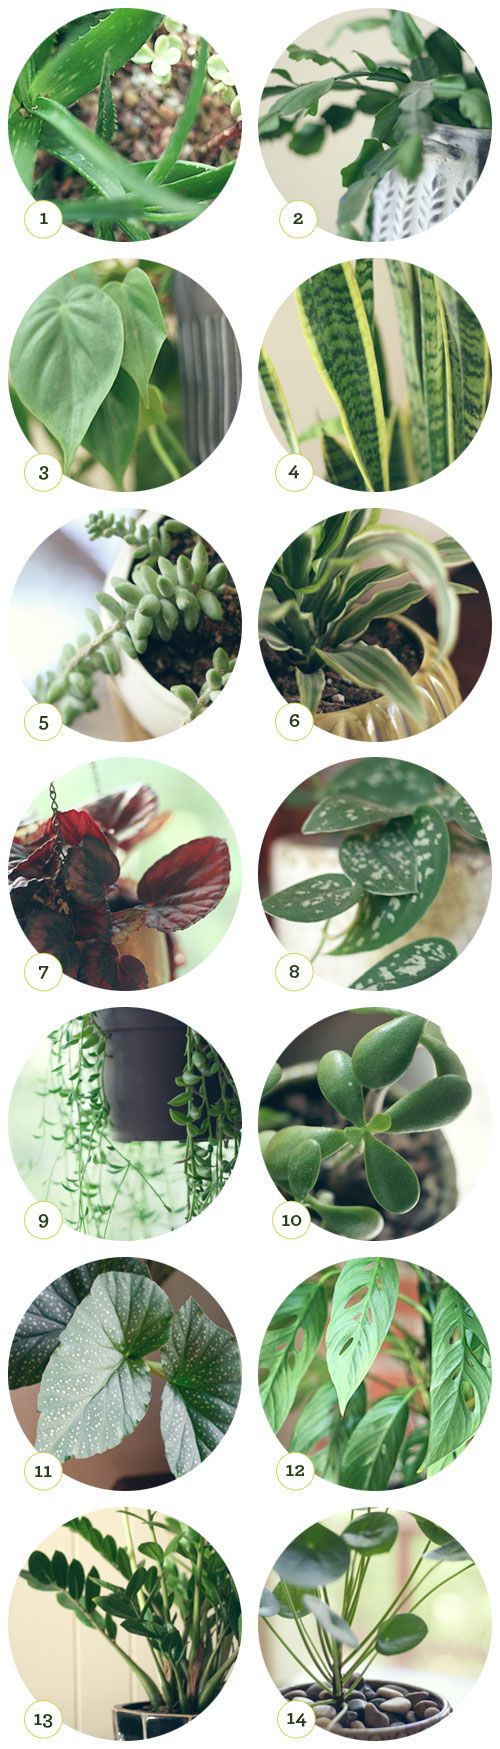 House Plant List 1 Aloe 2 Christmas Cactus 3 Philodendron 4 Snake Plant 5 Donkey S Tail Plant 6 Lemon Lime Pla Indoor Plants Plants Banana Plants